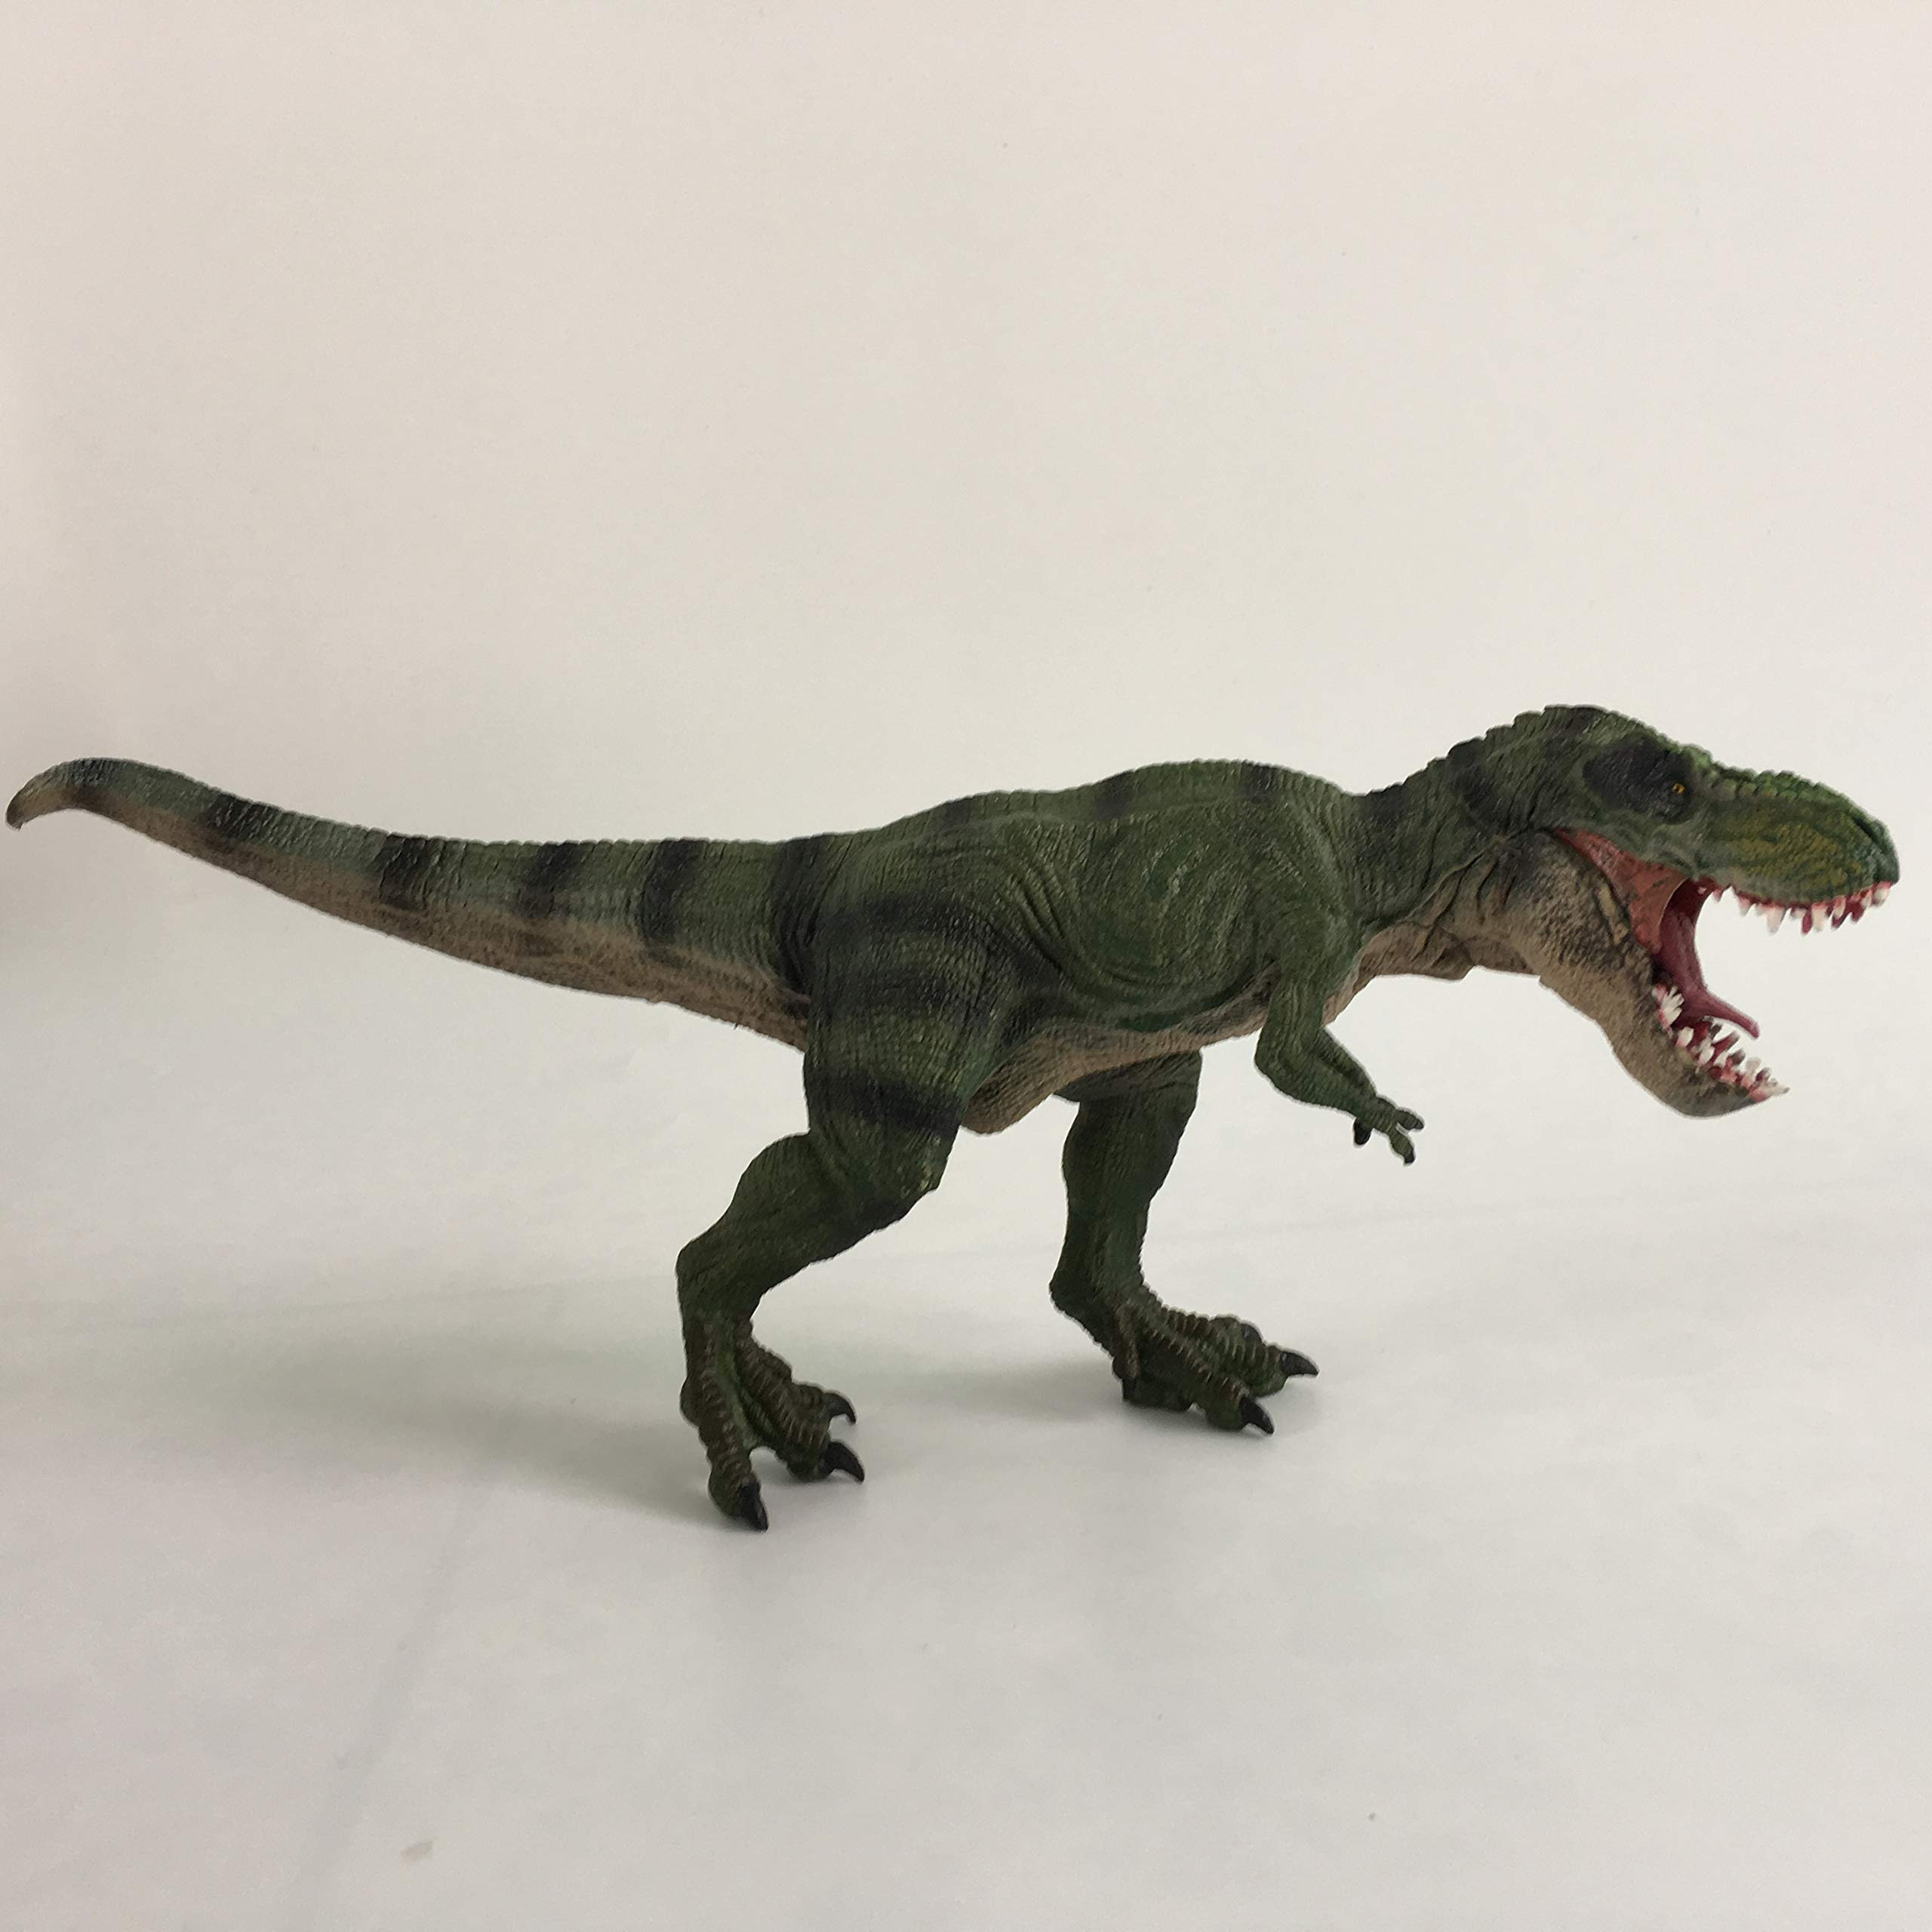 ZXLZKQ Jurassic Dinosaur Educational Dinosaur Toys for Toddlers and Older Kids Boys and Girls - M5011